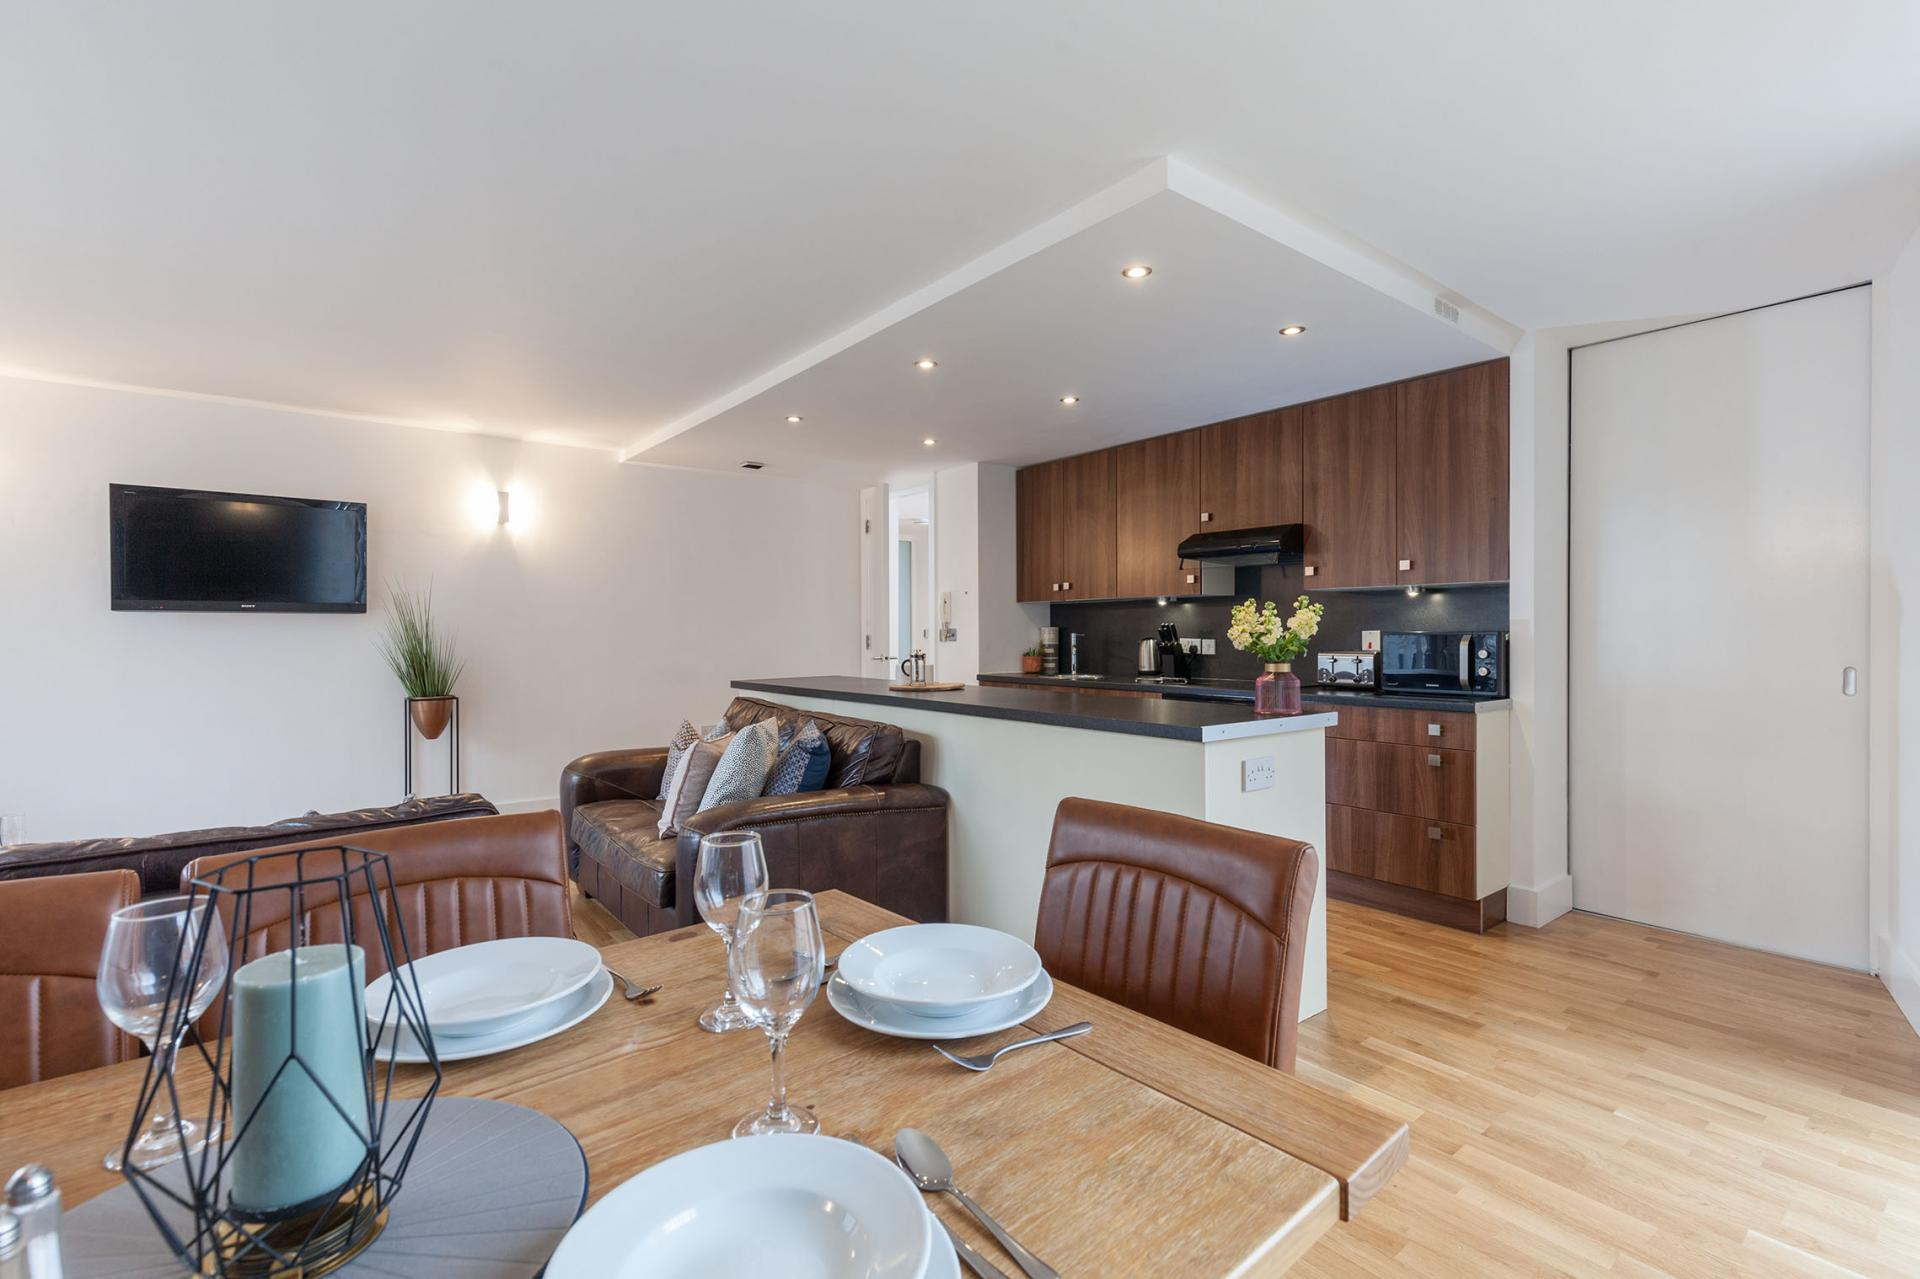 Kitchen diner at Sinclair Apartments, Centre, Sheffield